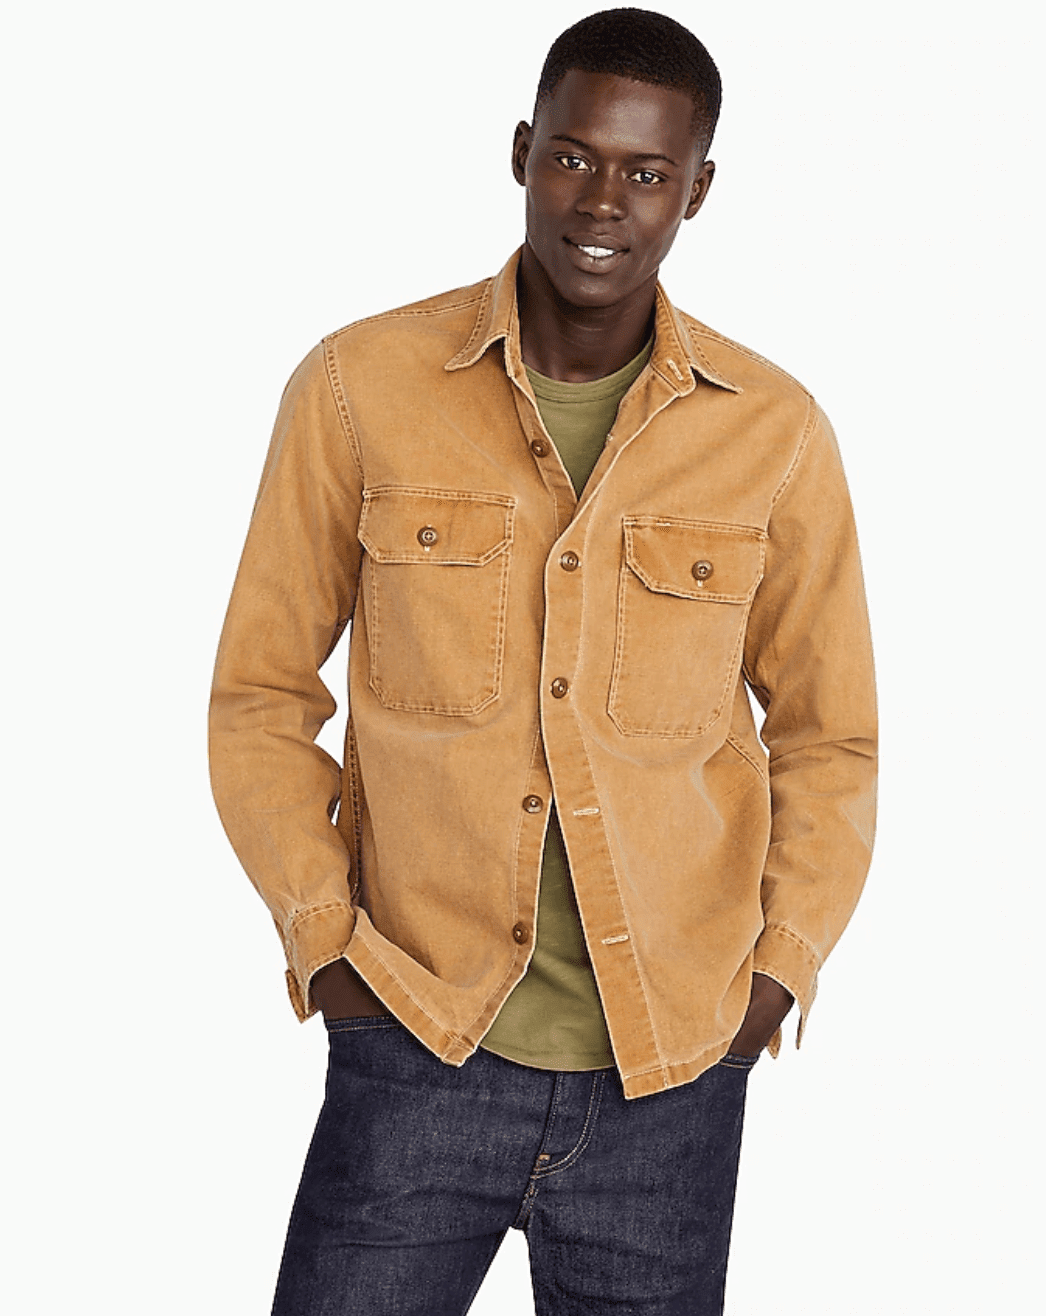 J.Crew Wallace & Barnes Shirt-Jacket